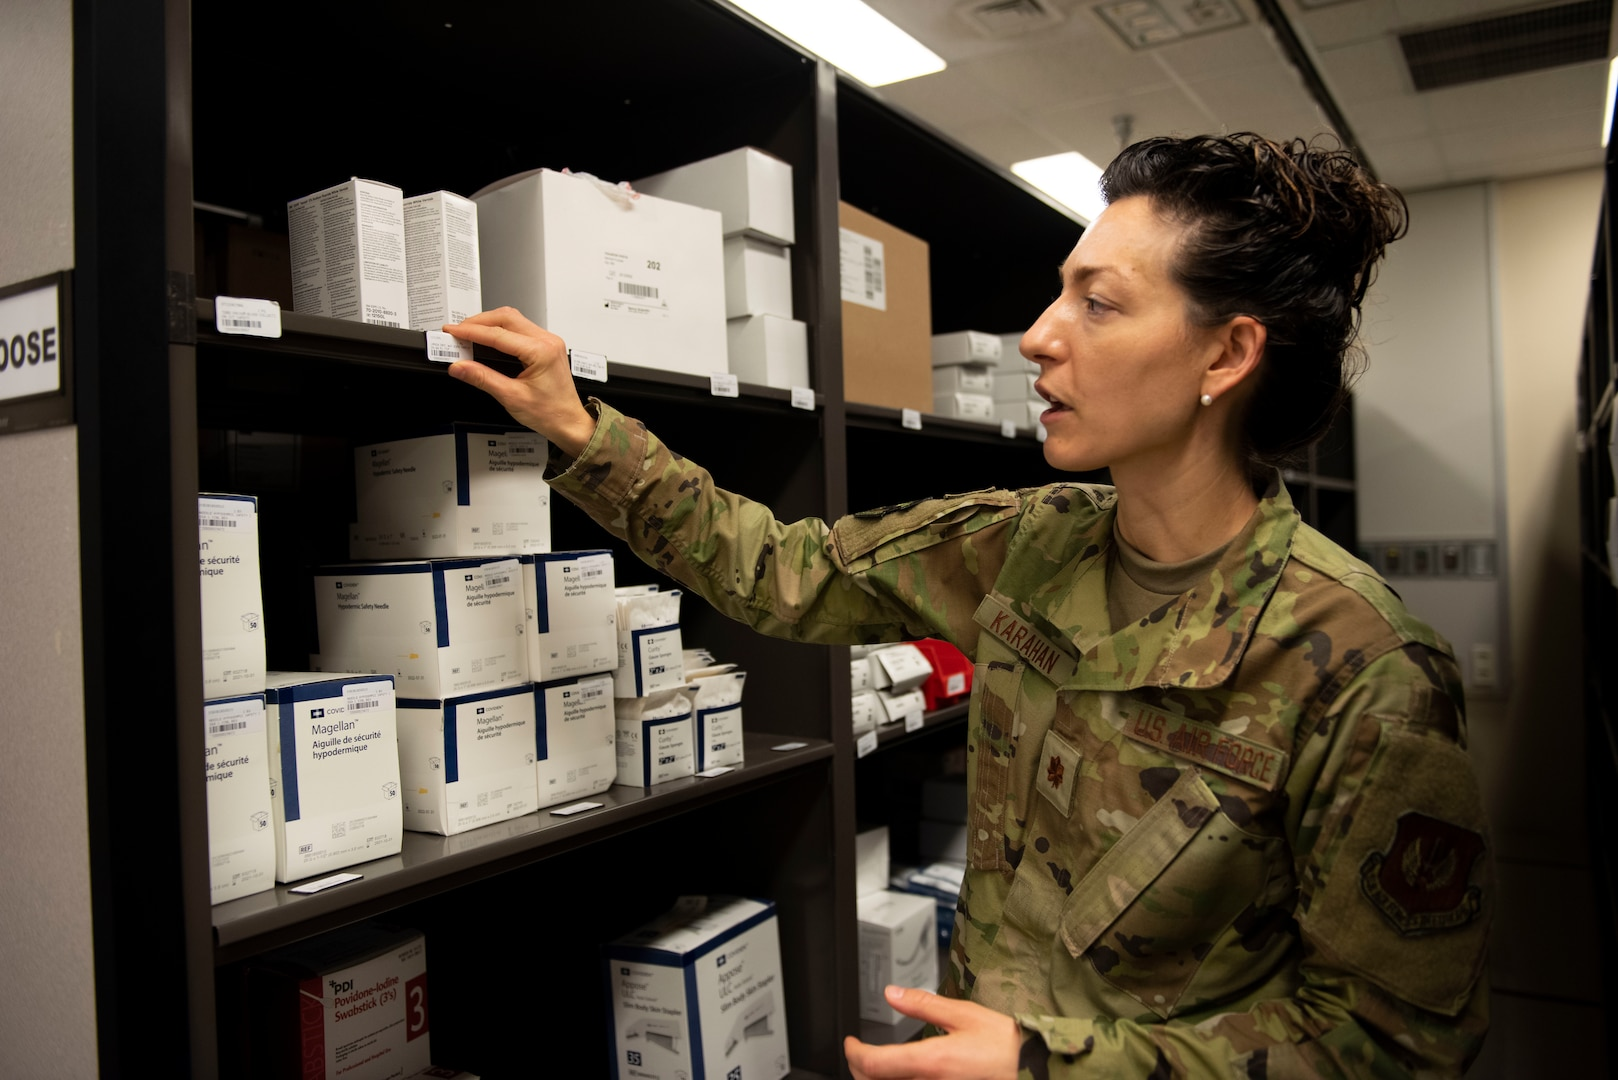 U.S. Air Force Maj. Crystal Karahan, 39th Medical Support Squadron Medical Logistics flight commander, checks the shelf labels in the medical supply storeroom at the base clinic.